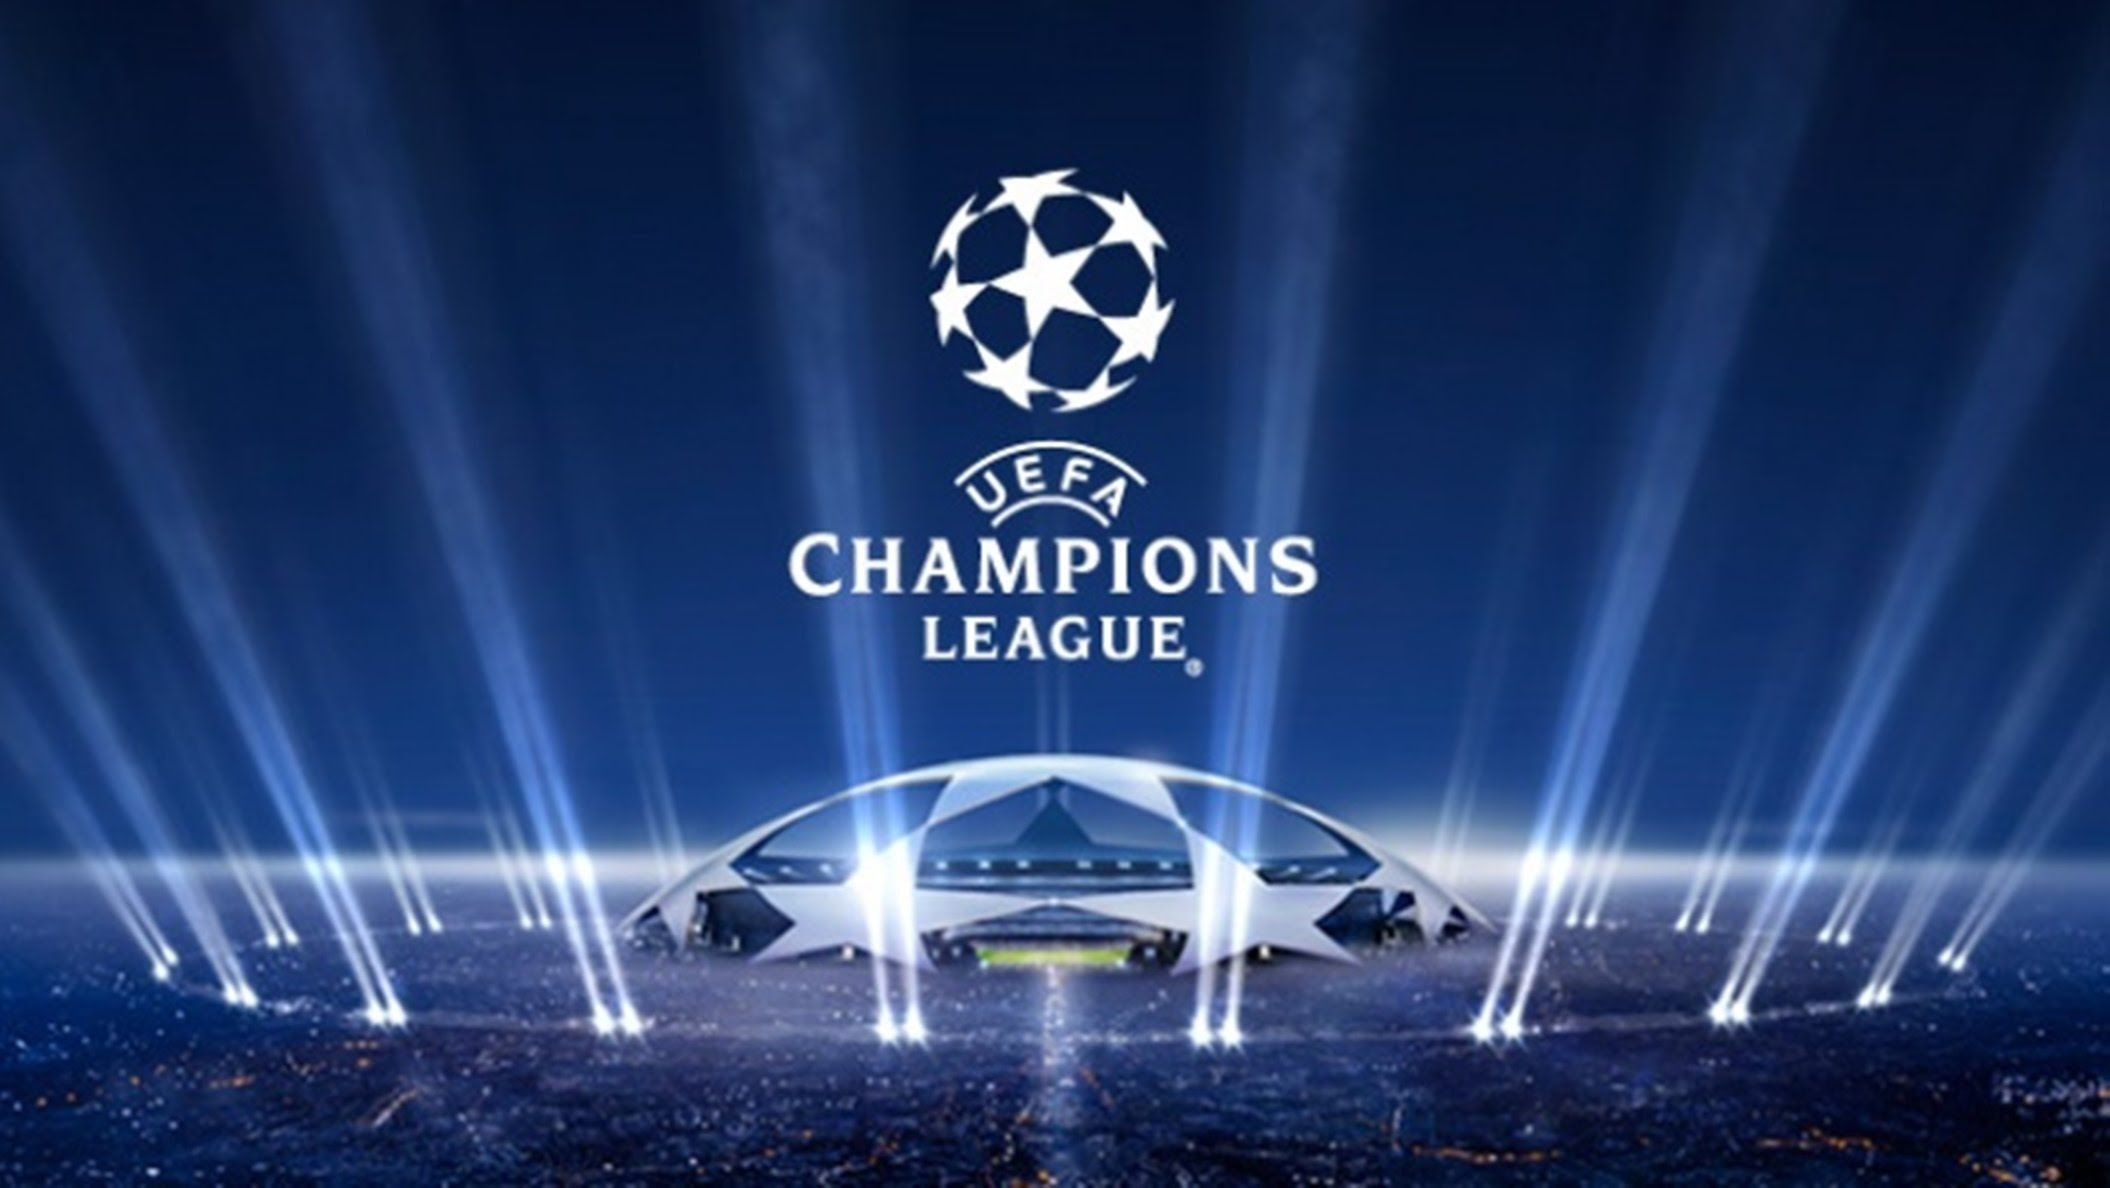 Champions League Wallpaper Wallpaper Champions league fixtures 2110x1188